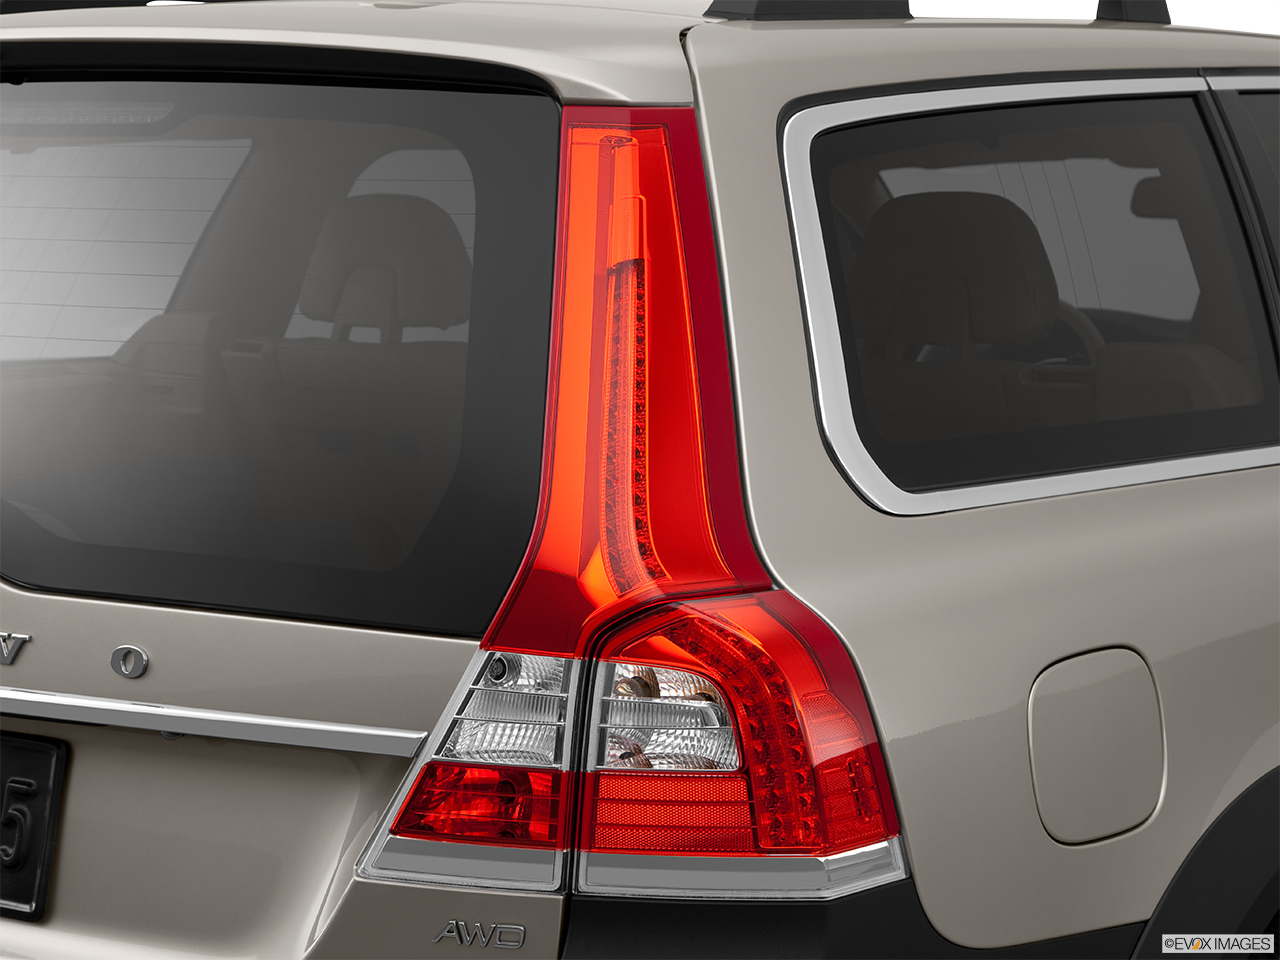 2014 Volvo XC70 3.2 AWD Premier Plus Passenger Side Taillight.